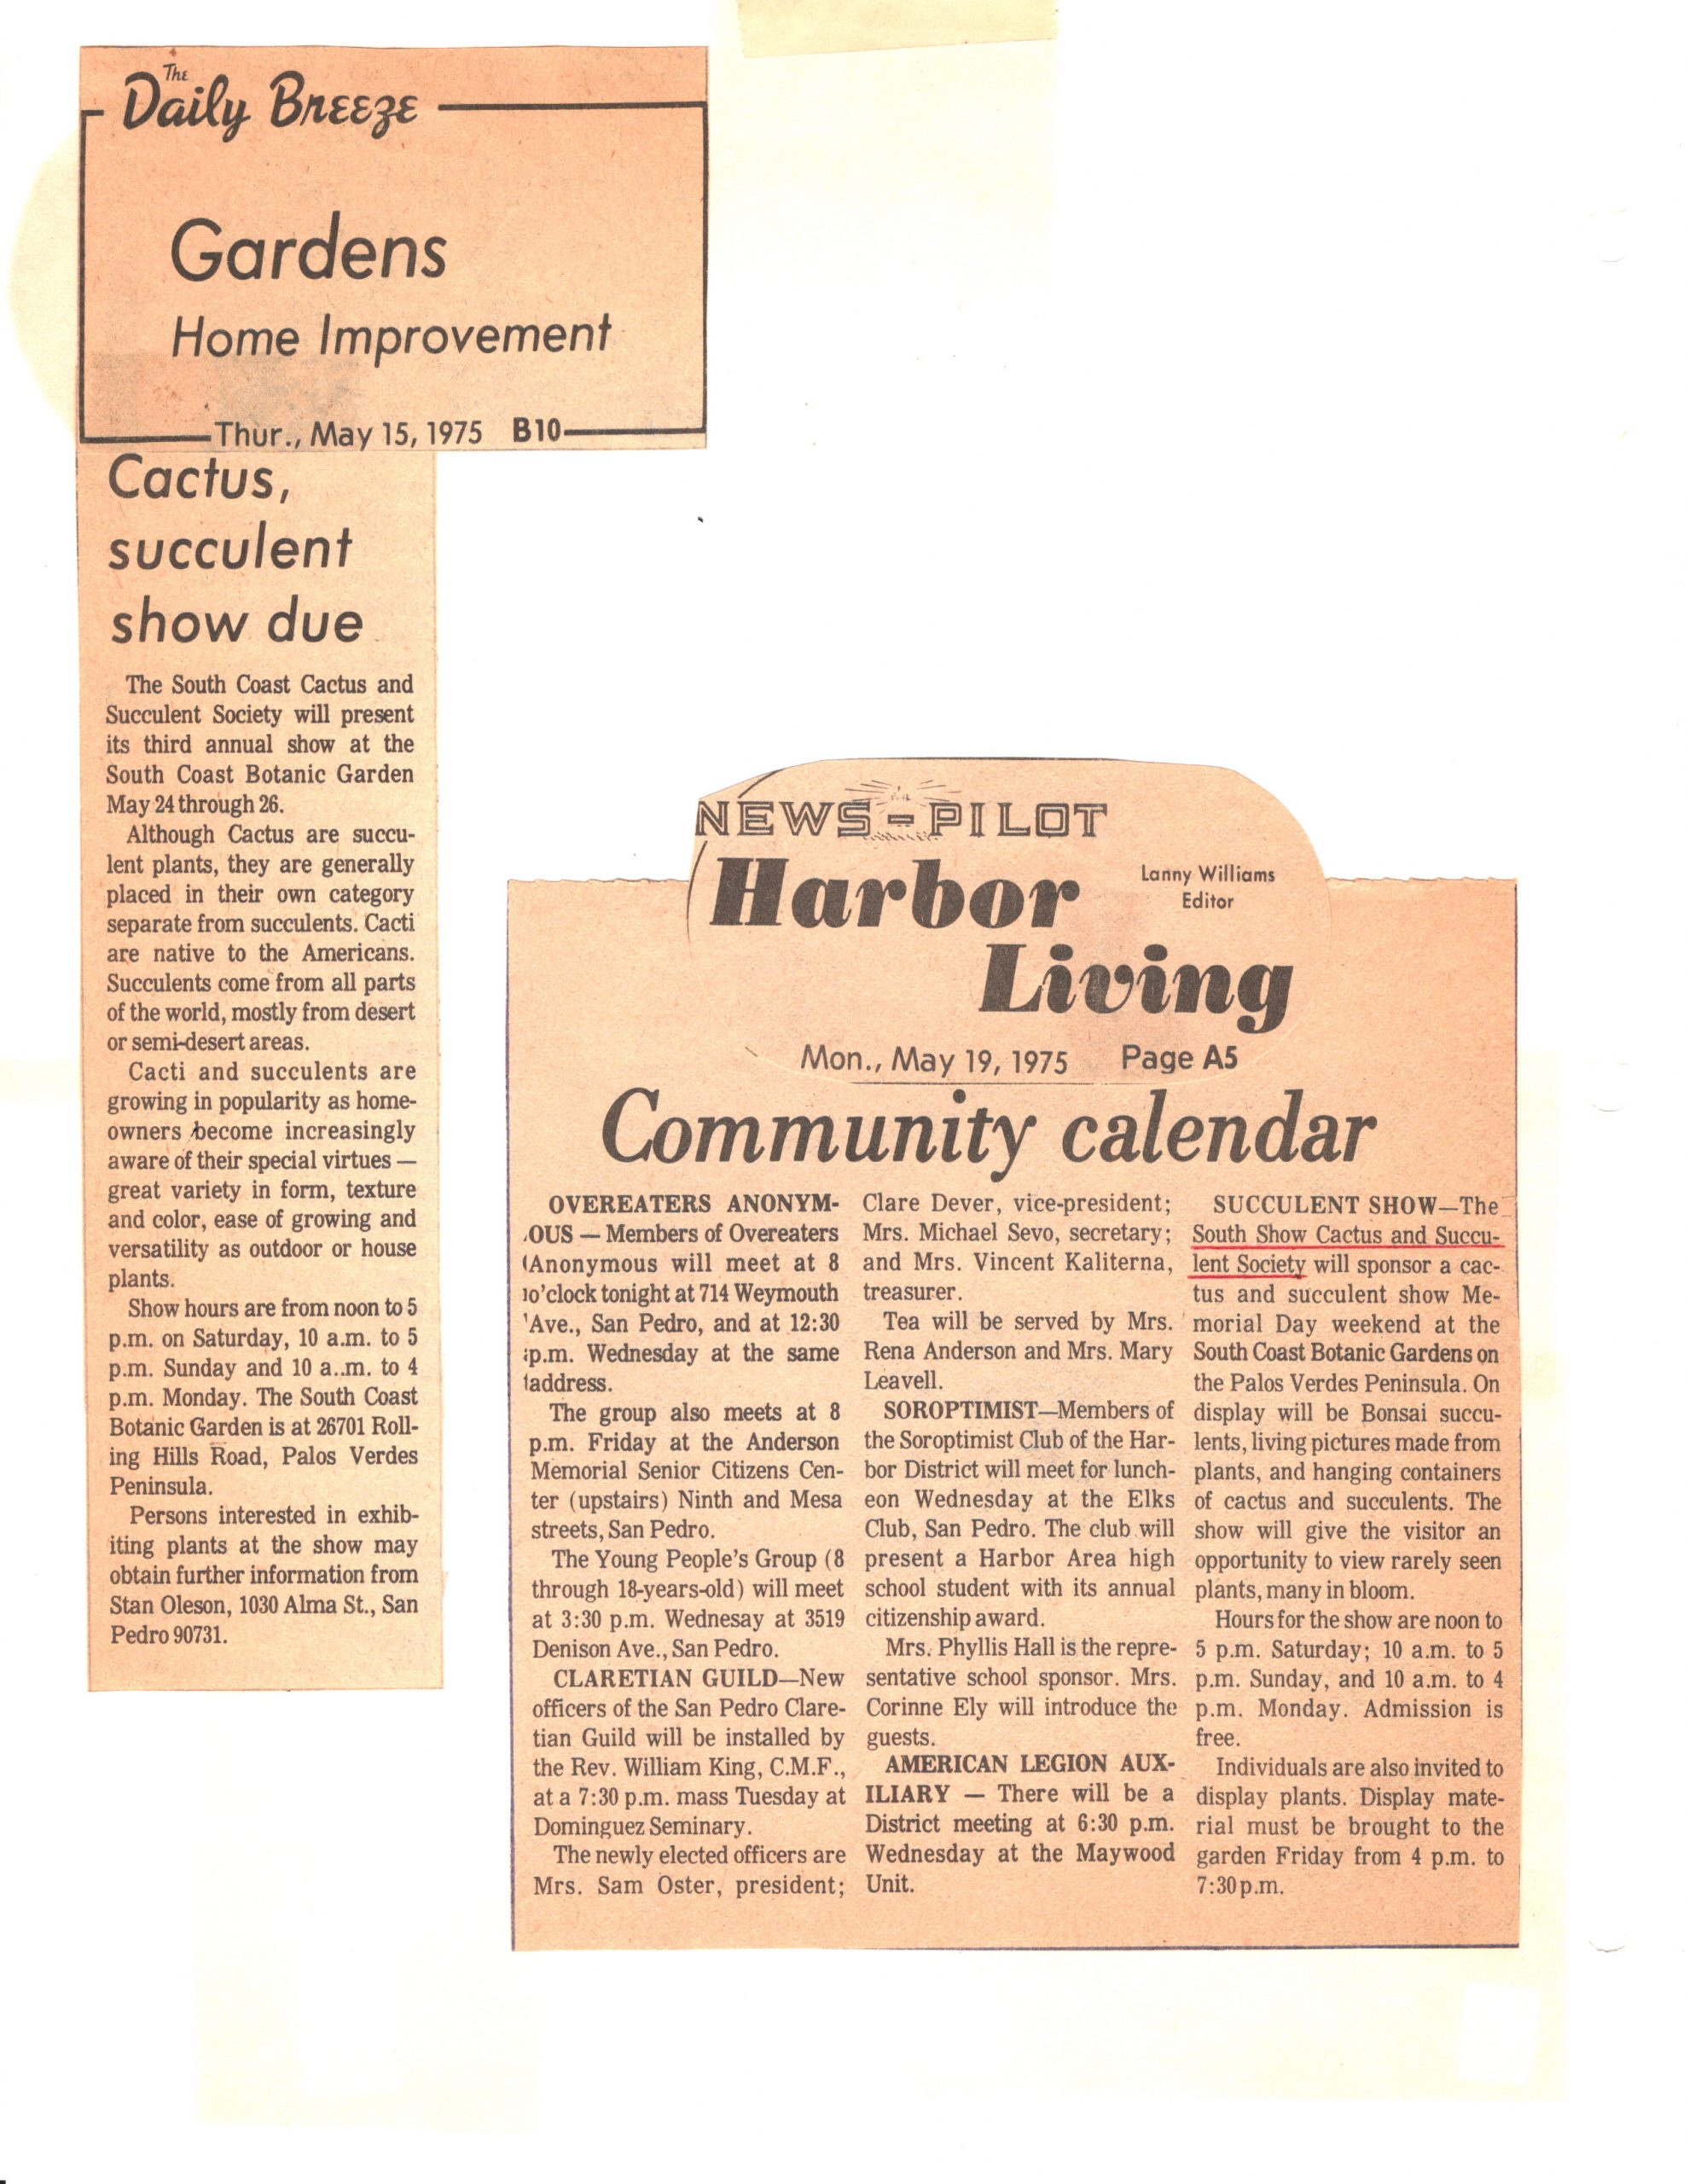 SCCSS-Cuttings-1975-05-15